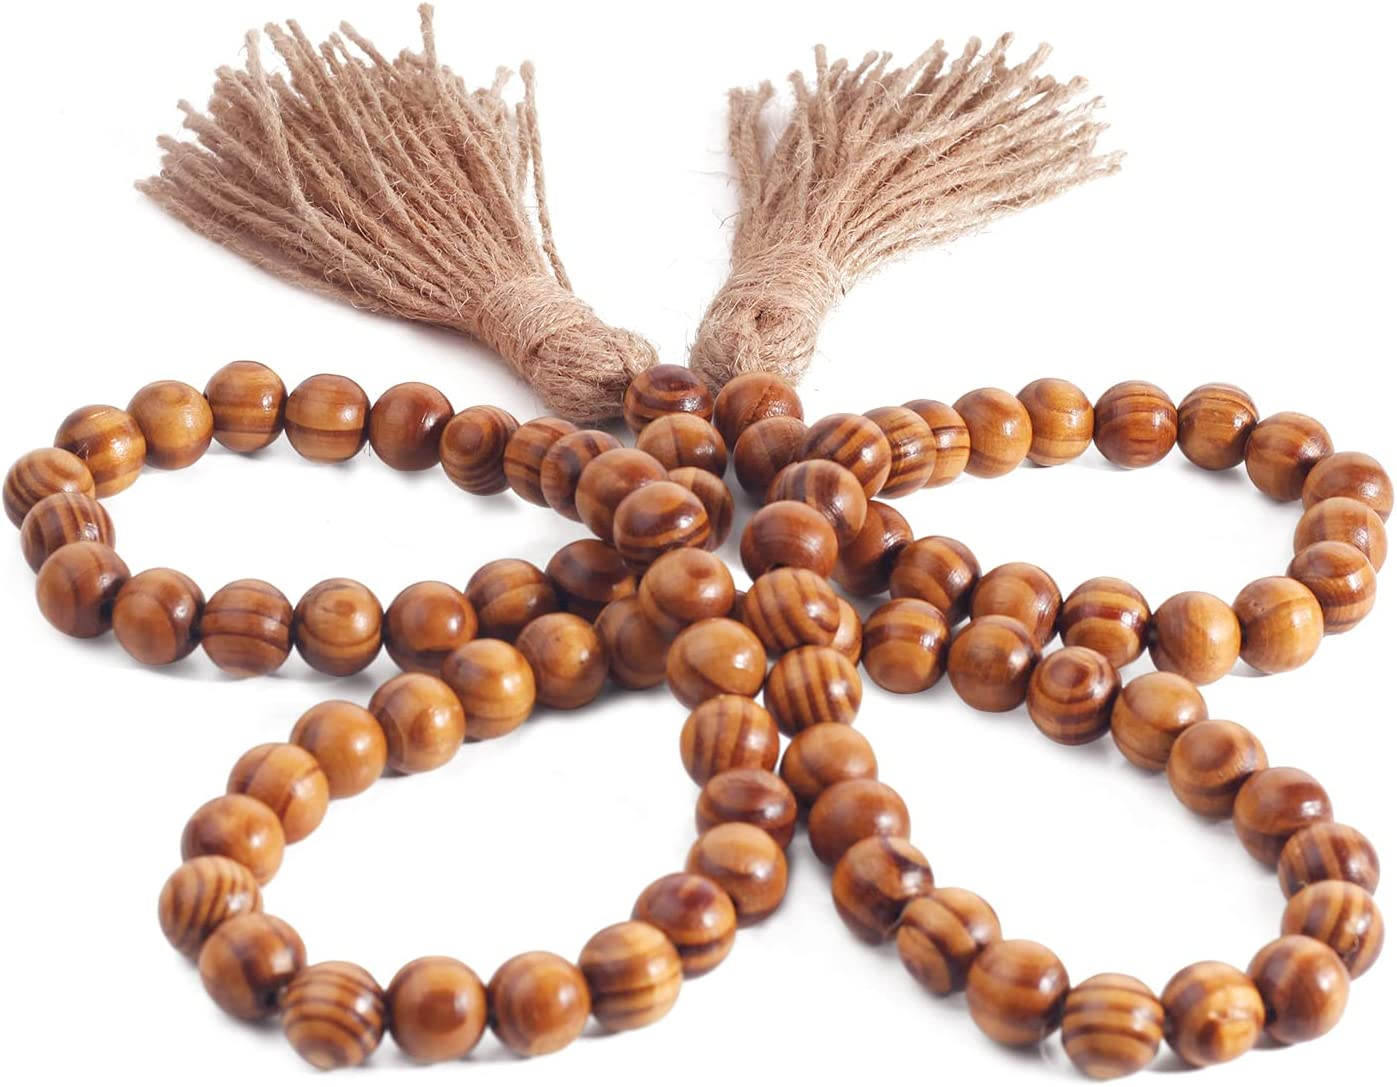 Pegason Wood Bead Garland Farmhouse Beads with Tassel Rustic Home Boho Wall Decor Waxed Wooden Pattern Beads Dining and Coffee Table Decor Tassel Garland Easter Decoration Gift for Mom